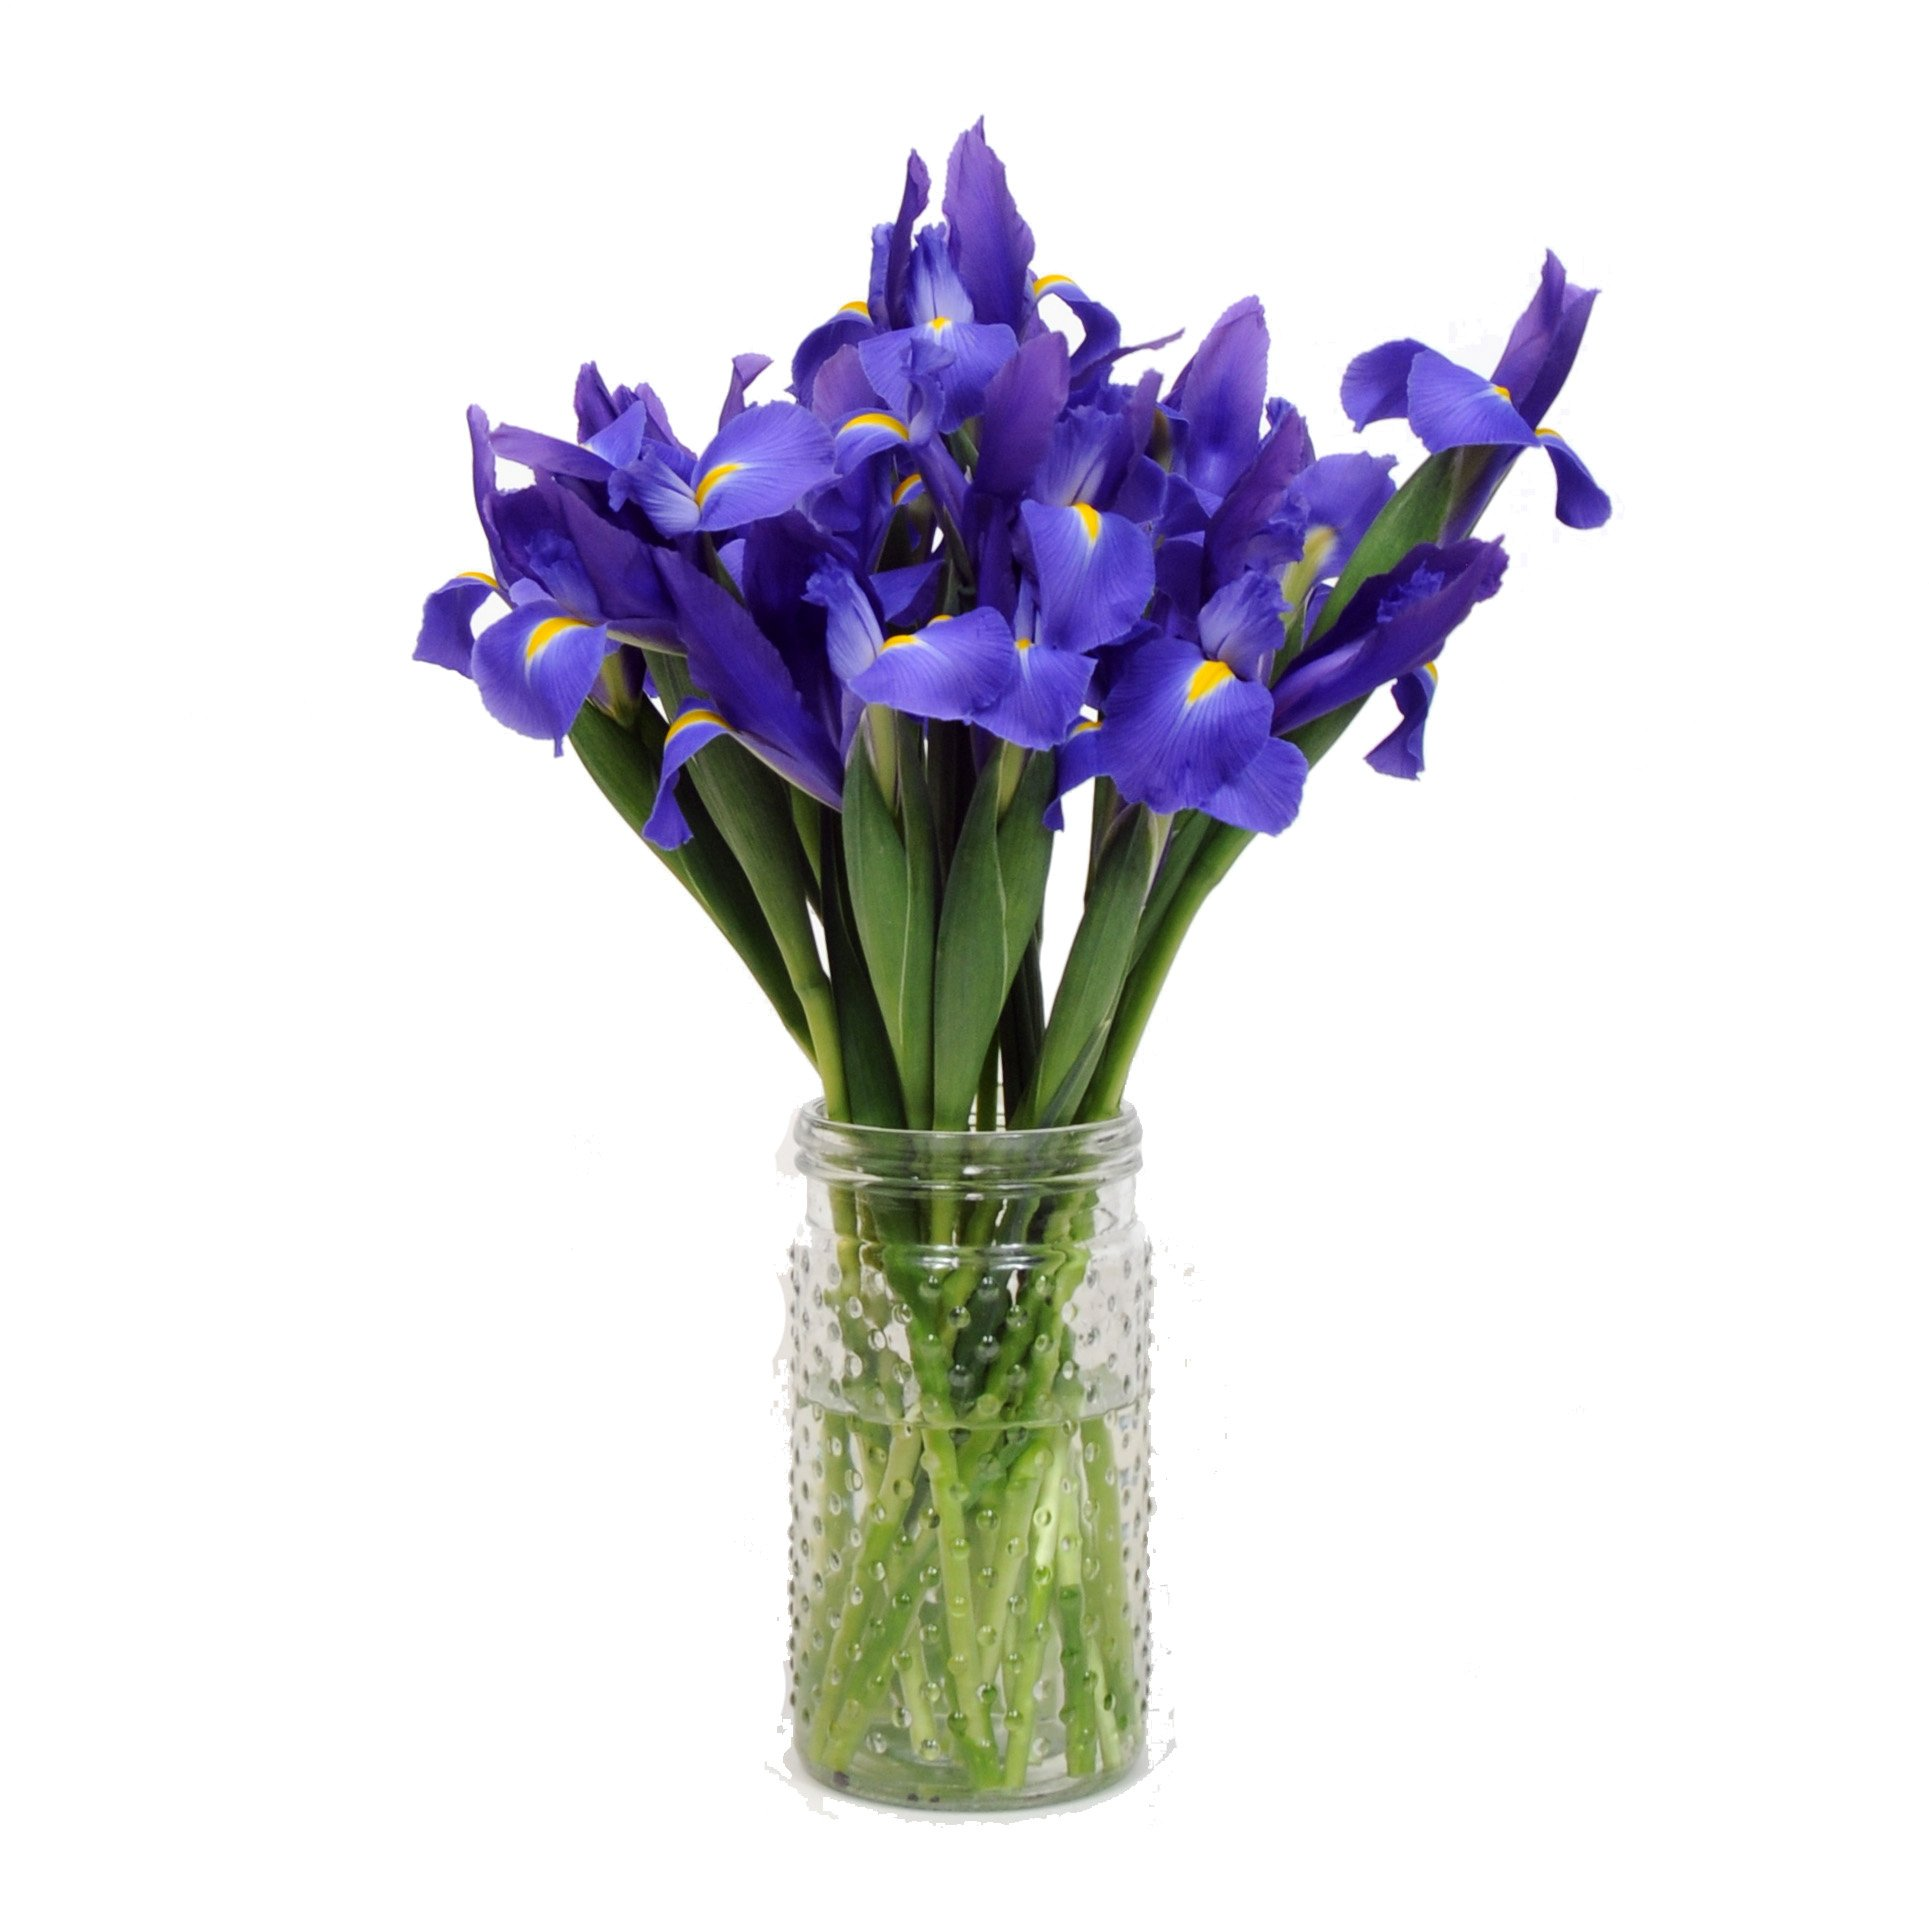 Cheap flowers for get well soon find flowers for get well soon get quotations stargazer barn blue telstar iris with vase sympathy flowers get well soon izmirmasajfo